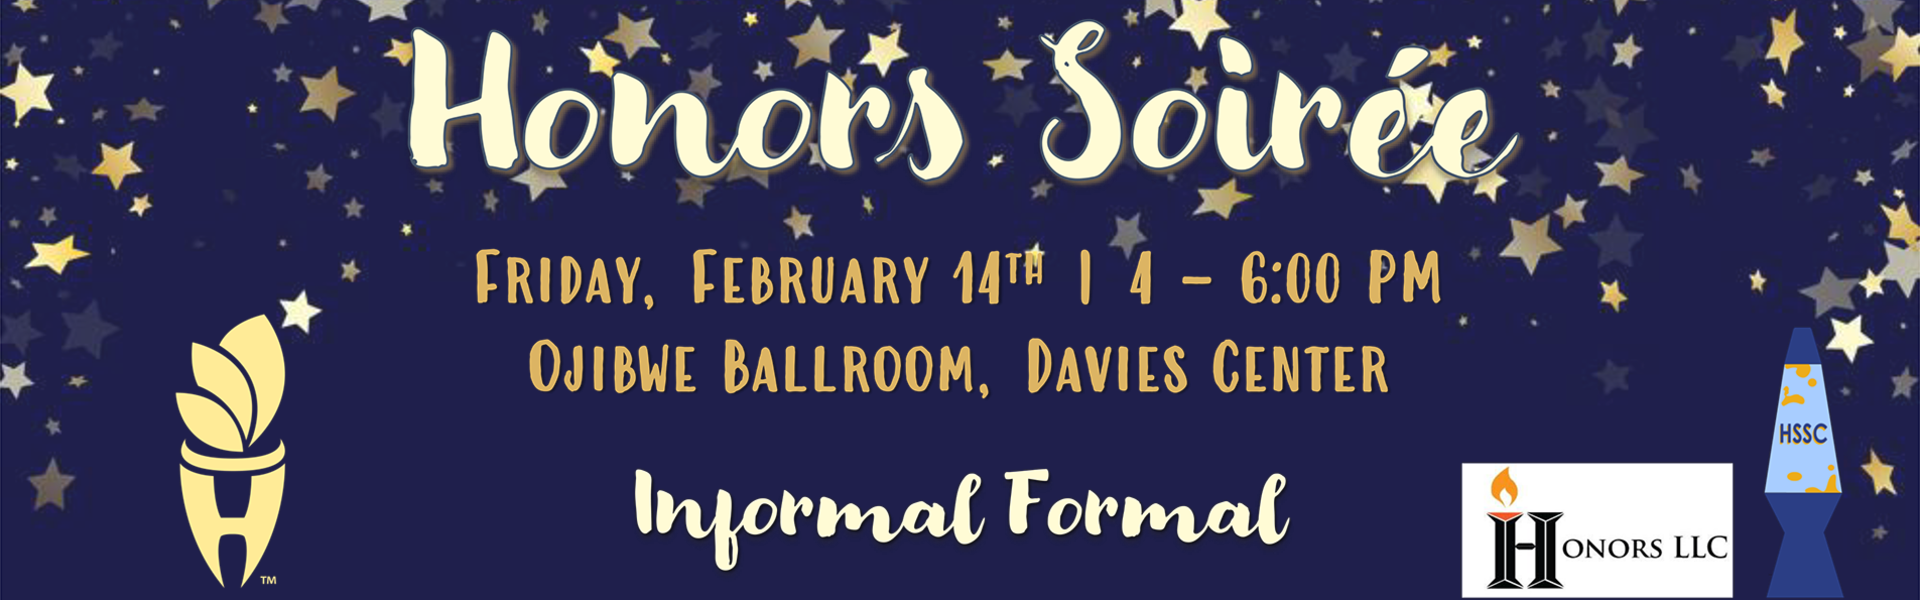 Honors Soiree event graphic